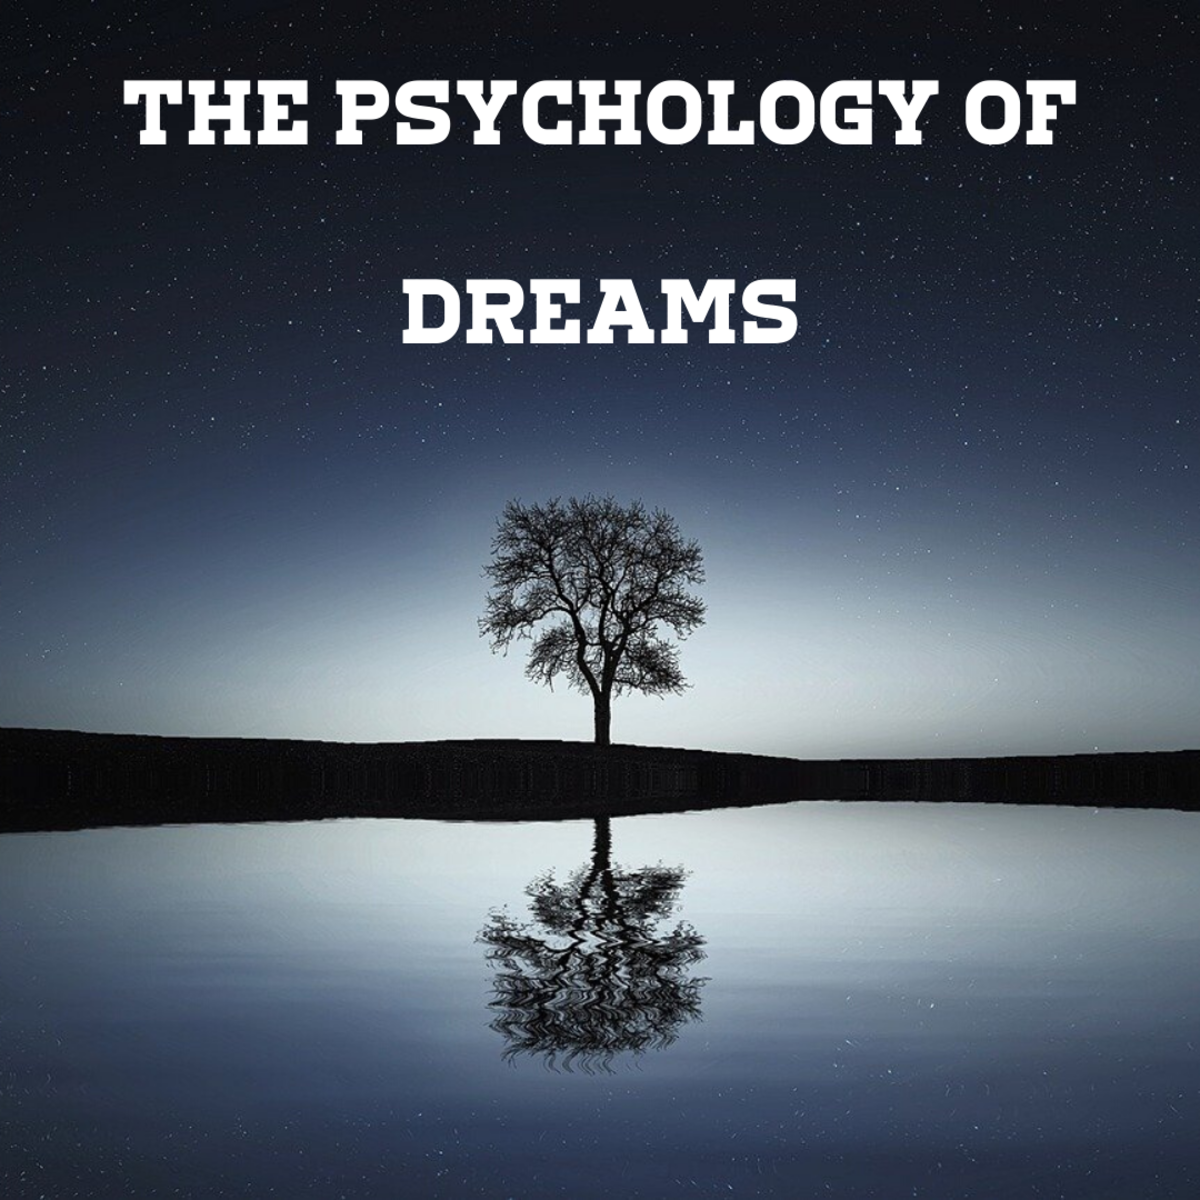 Learn about the psychological aspects behind dreams.